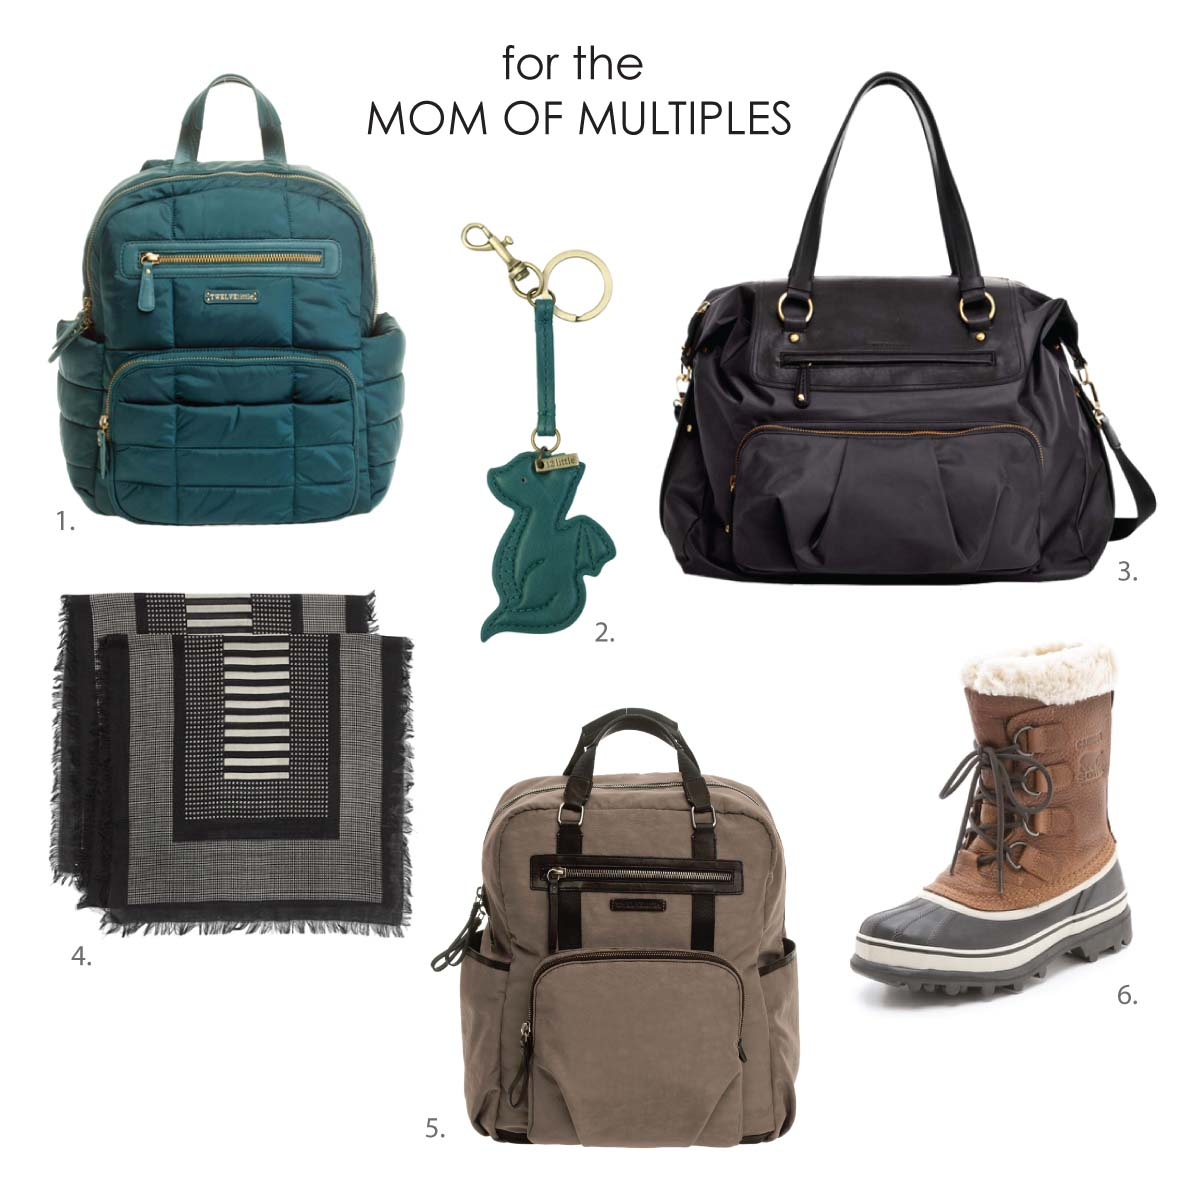 Best Backpacks For Moms 7jCydTwI